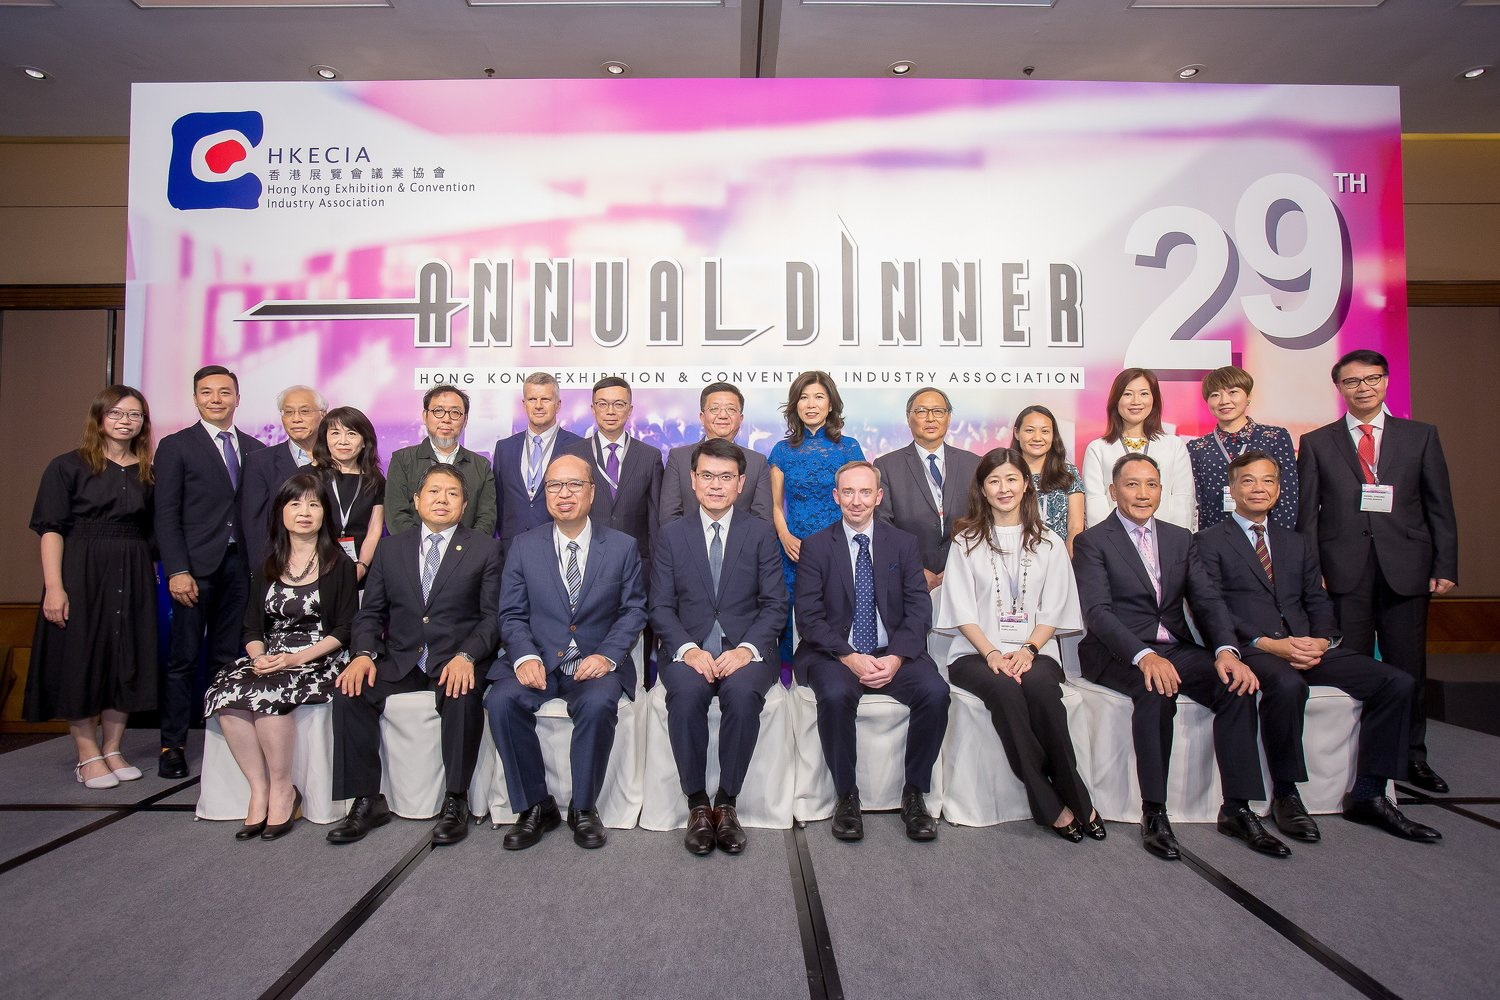 rsz 1 group photo of guest of honour and hkecia chairman and executive committee members